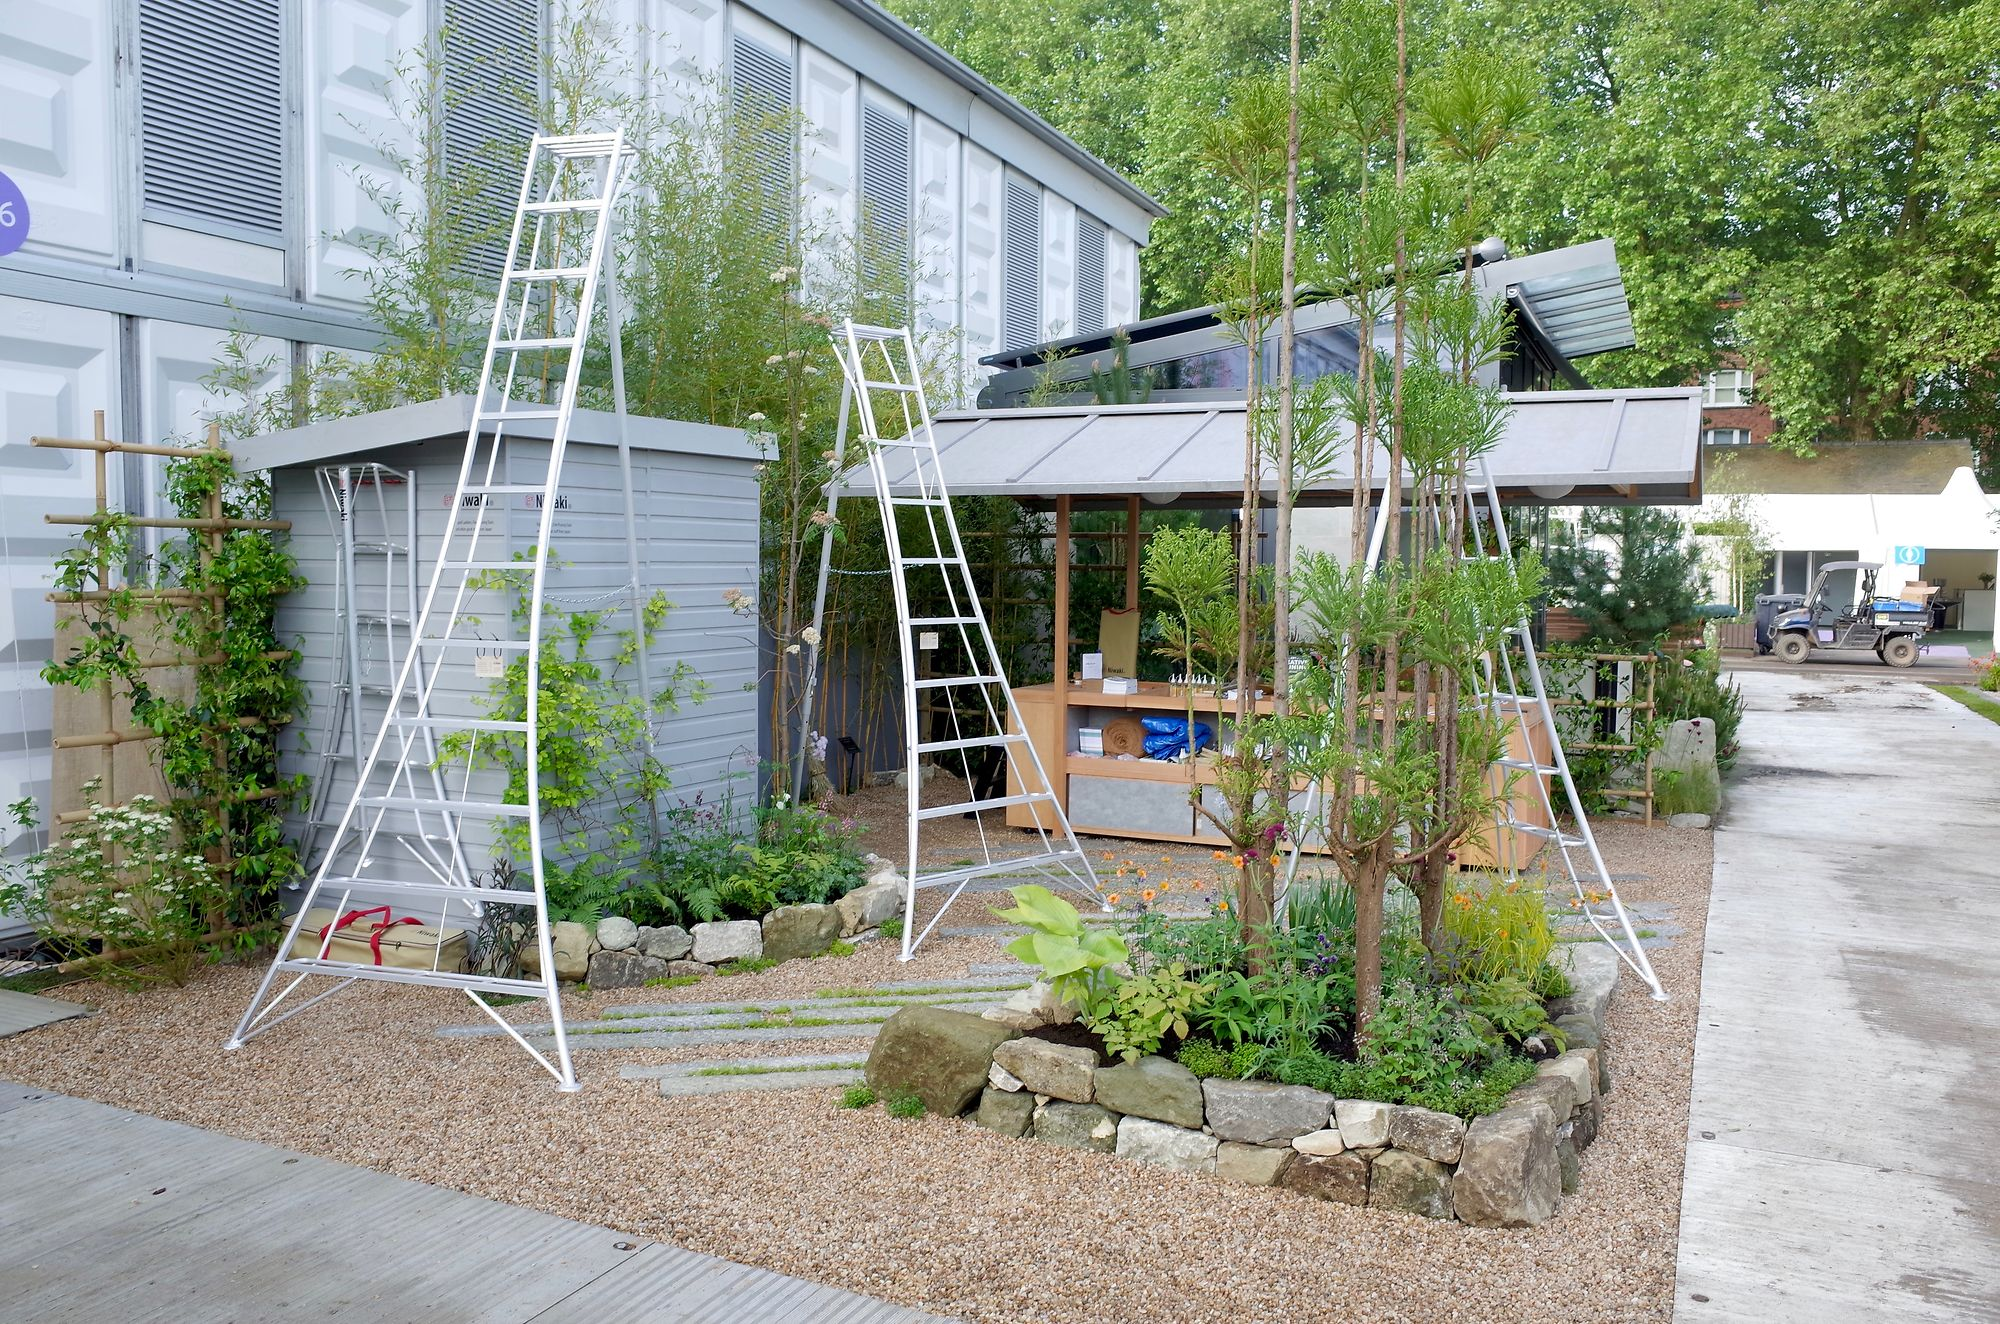 Niwaki - Japanese Tripod Ladders, Fine Pruning Tools & Other Great